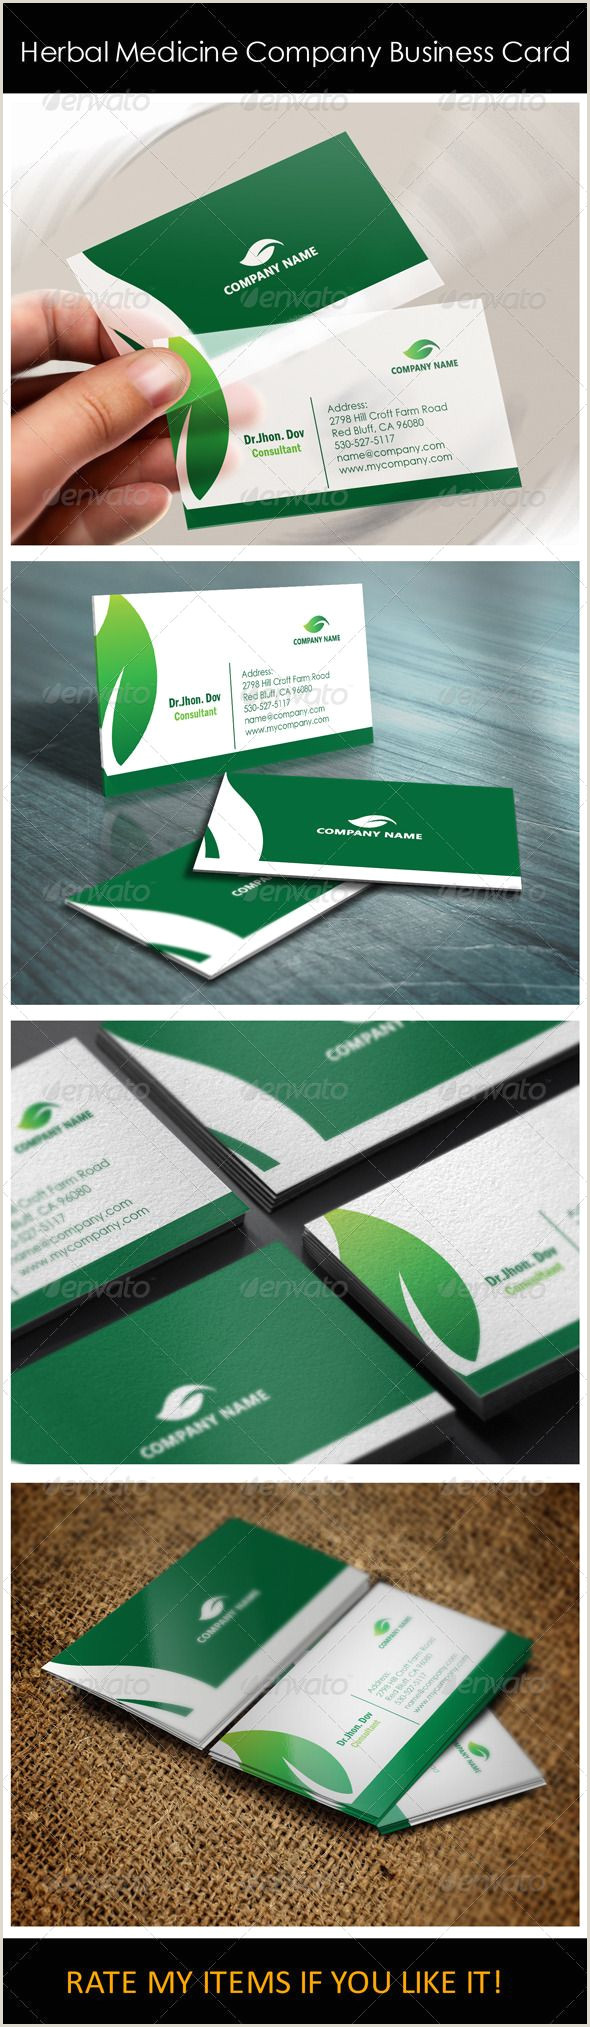 What Should Be On My Business Card Herbal Medicine Pany Business Card Templates